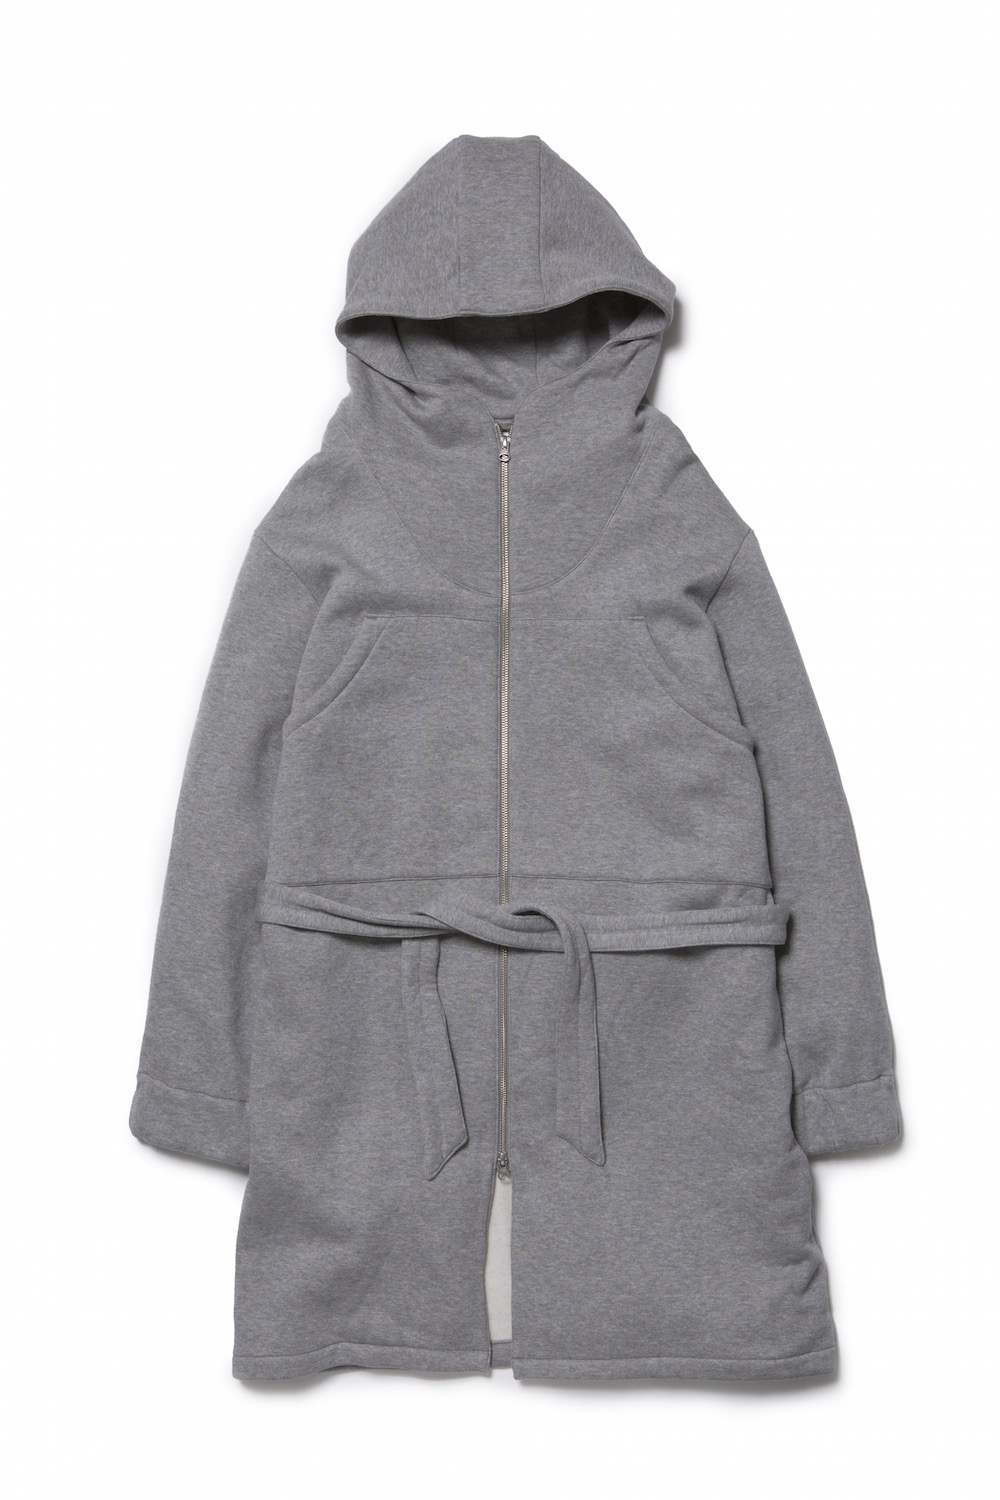 VLANK CONCEPT WEAR SWEAT GOWN HOODIE